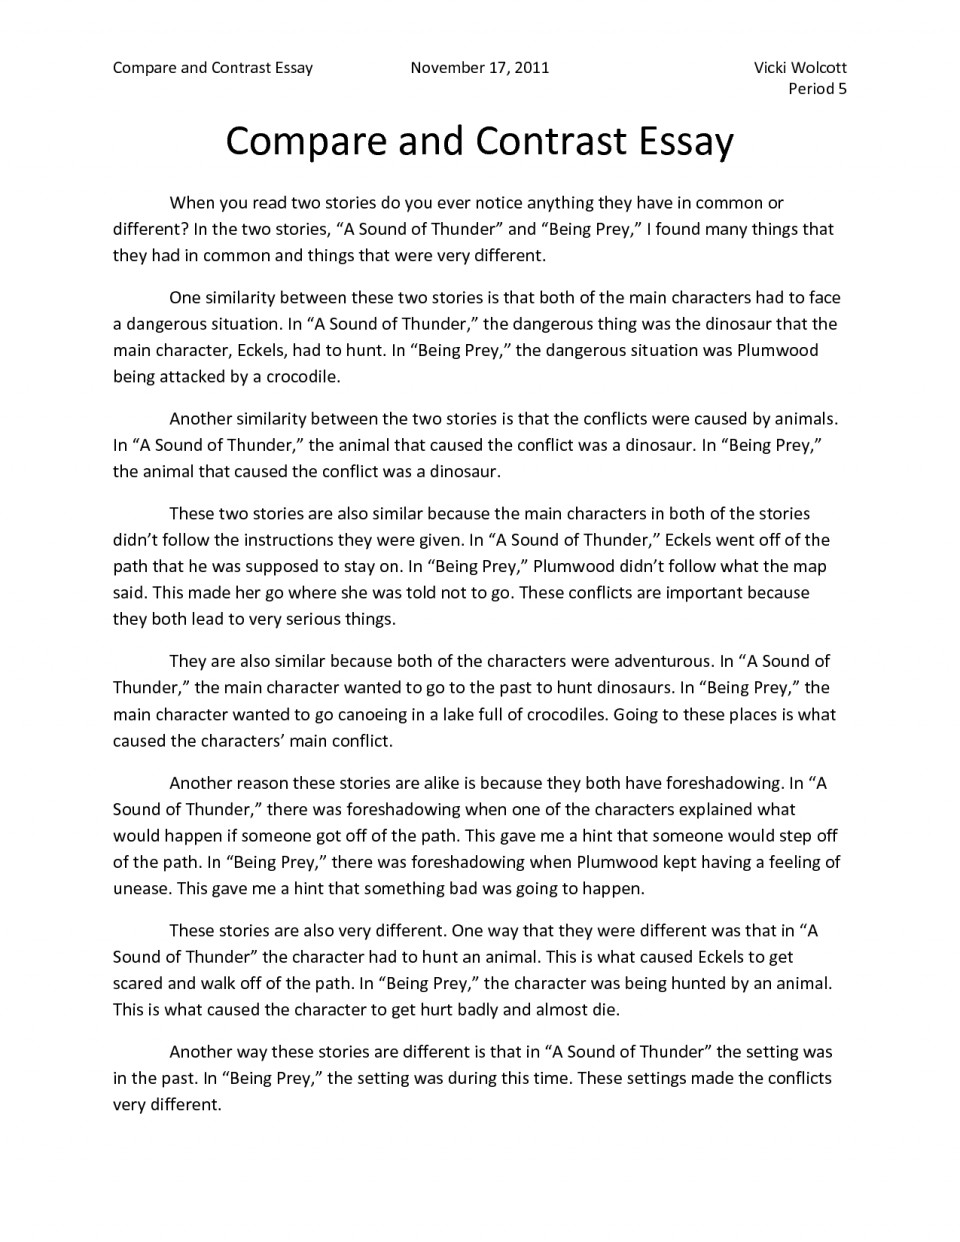 003 Perfect Essays Compare And Contrast Essay Introduction Example How To Write College Striking Examples For Students Topics 7th Grade 960